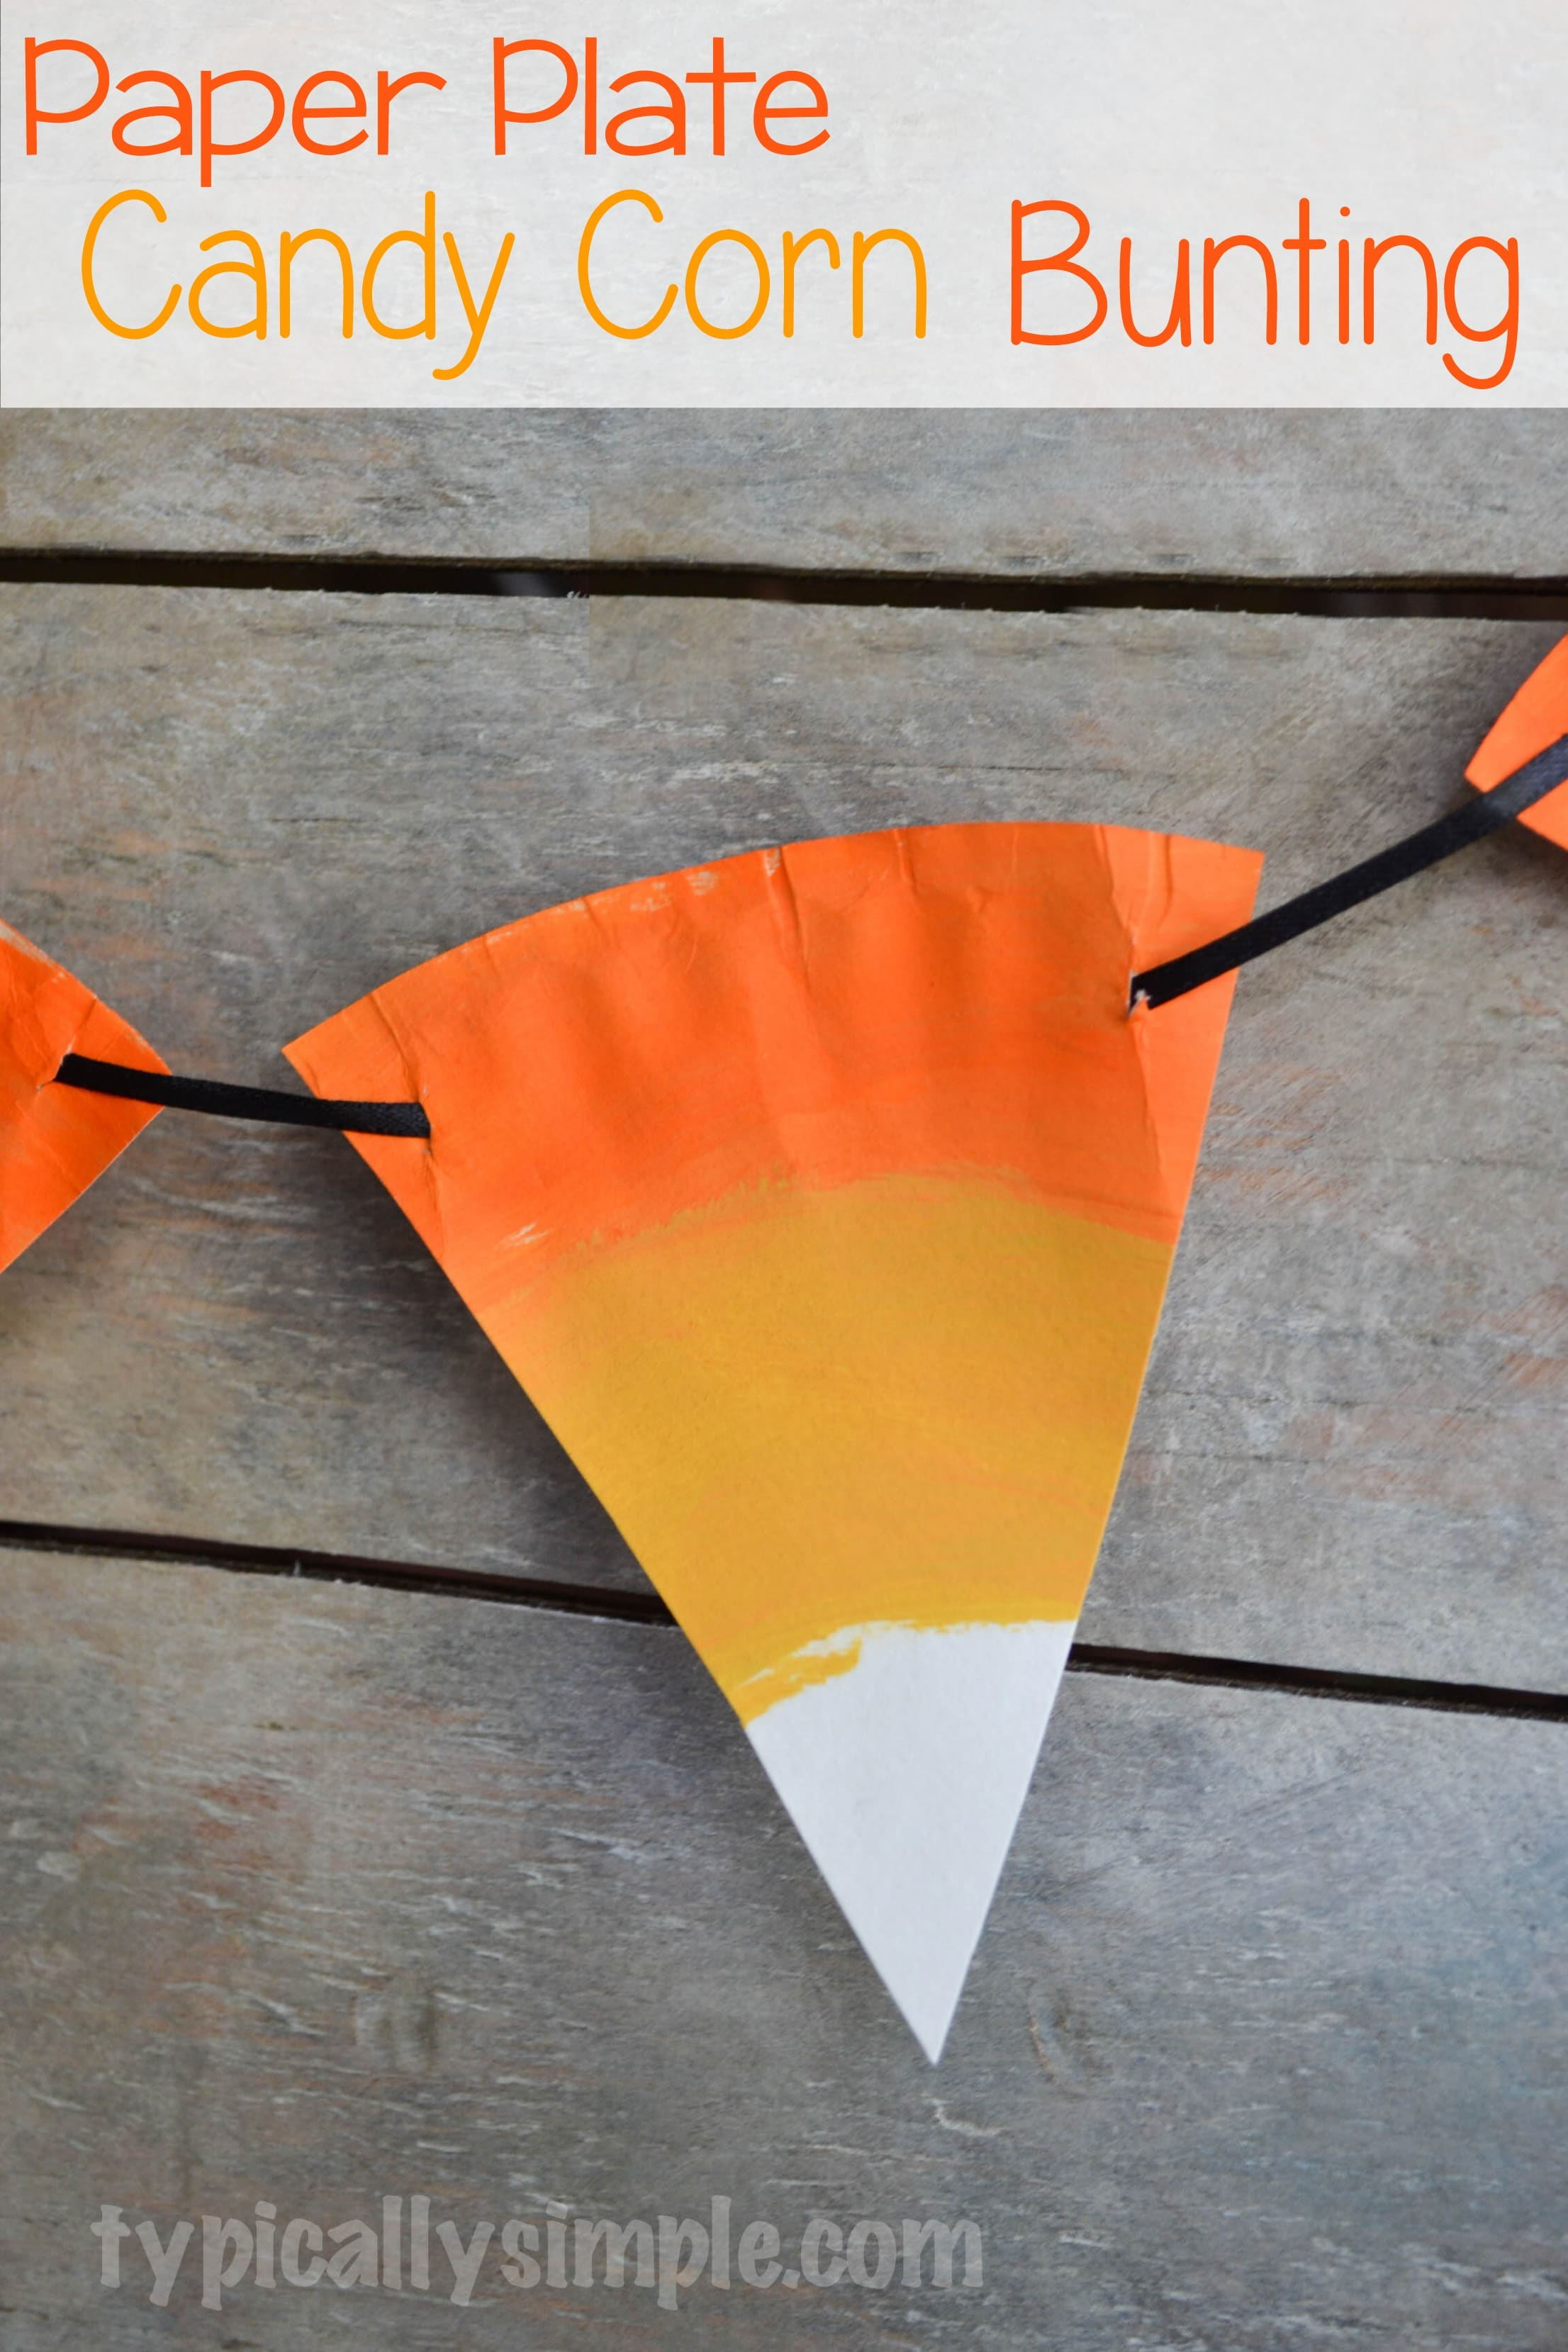 & Paper Plate Candy Corn Bunting - Typically Simple